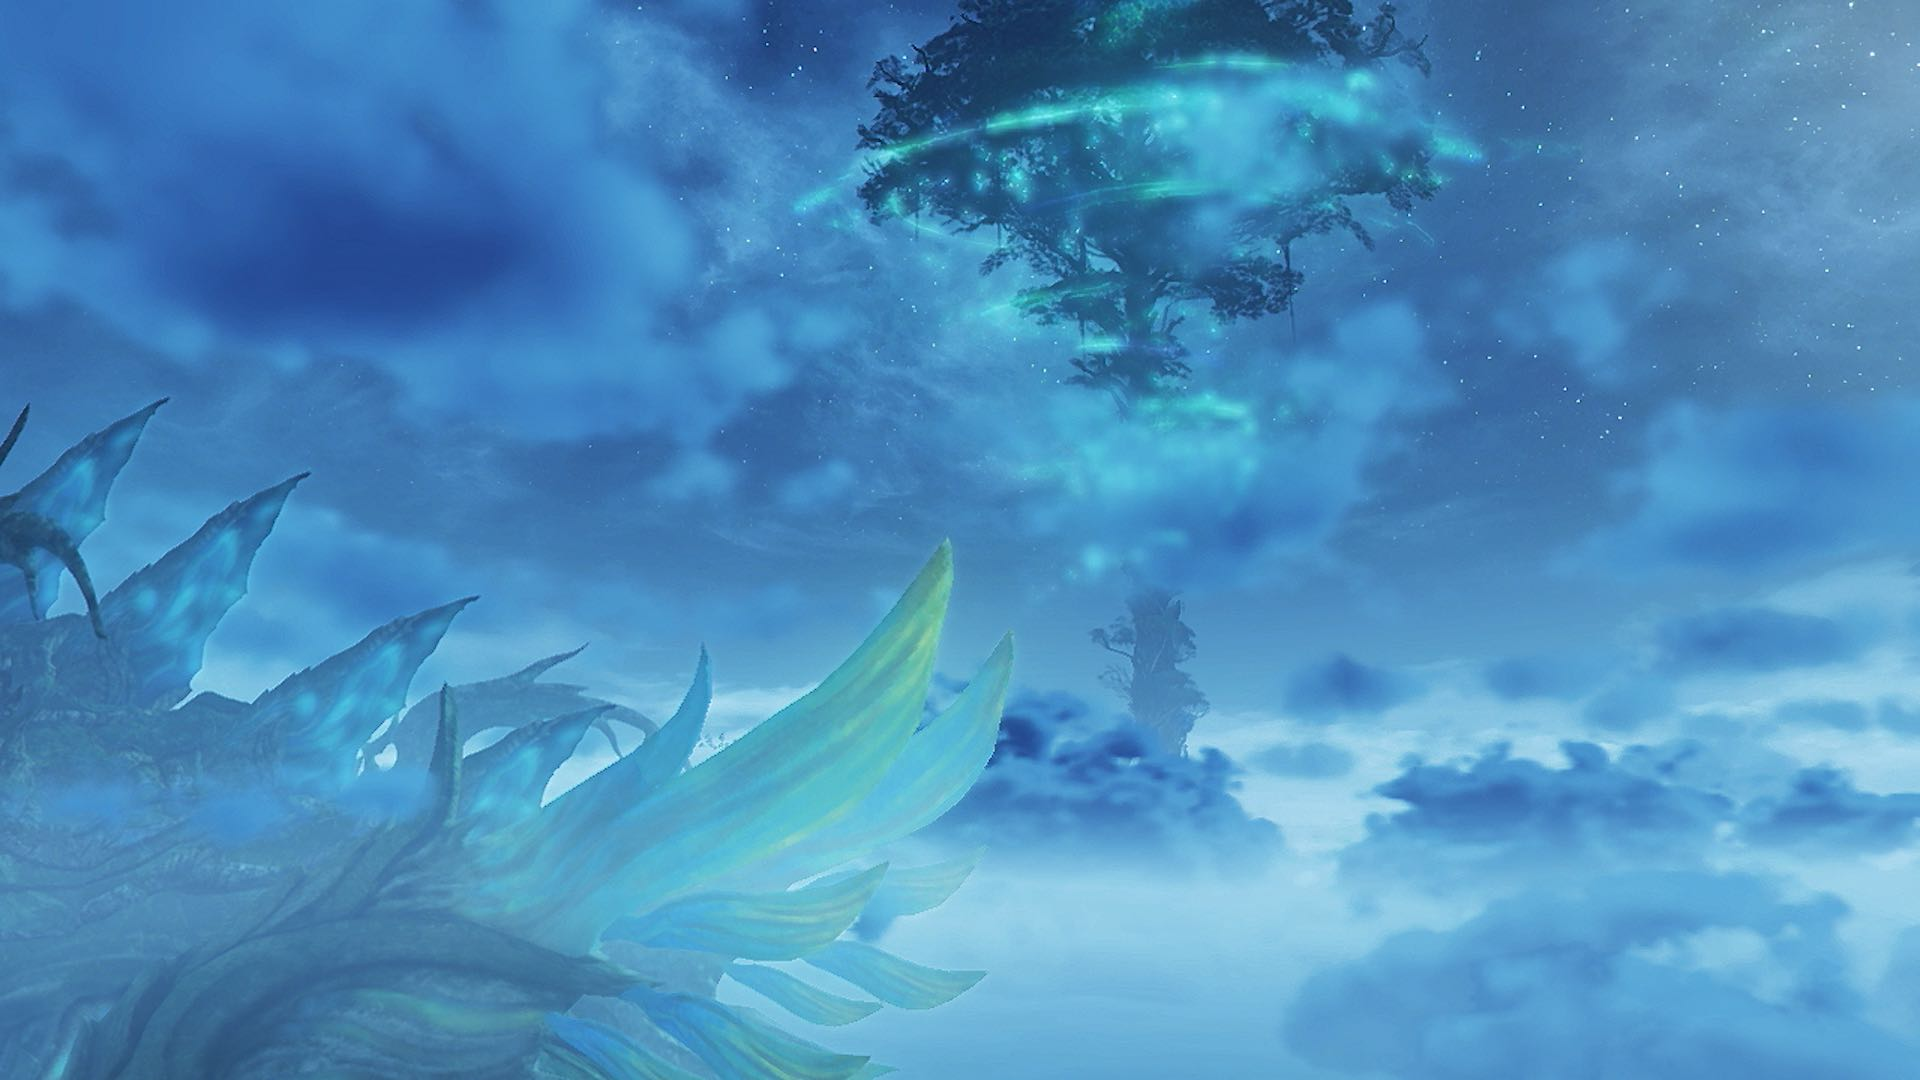 xenoblade-chronicles-2-review-screenshot-1